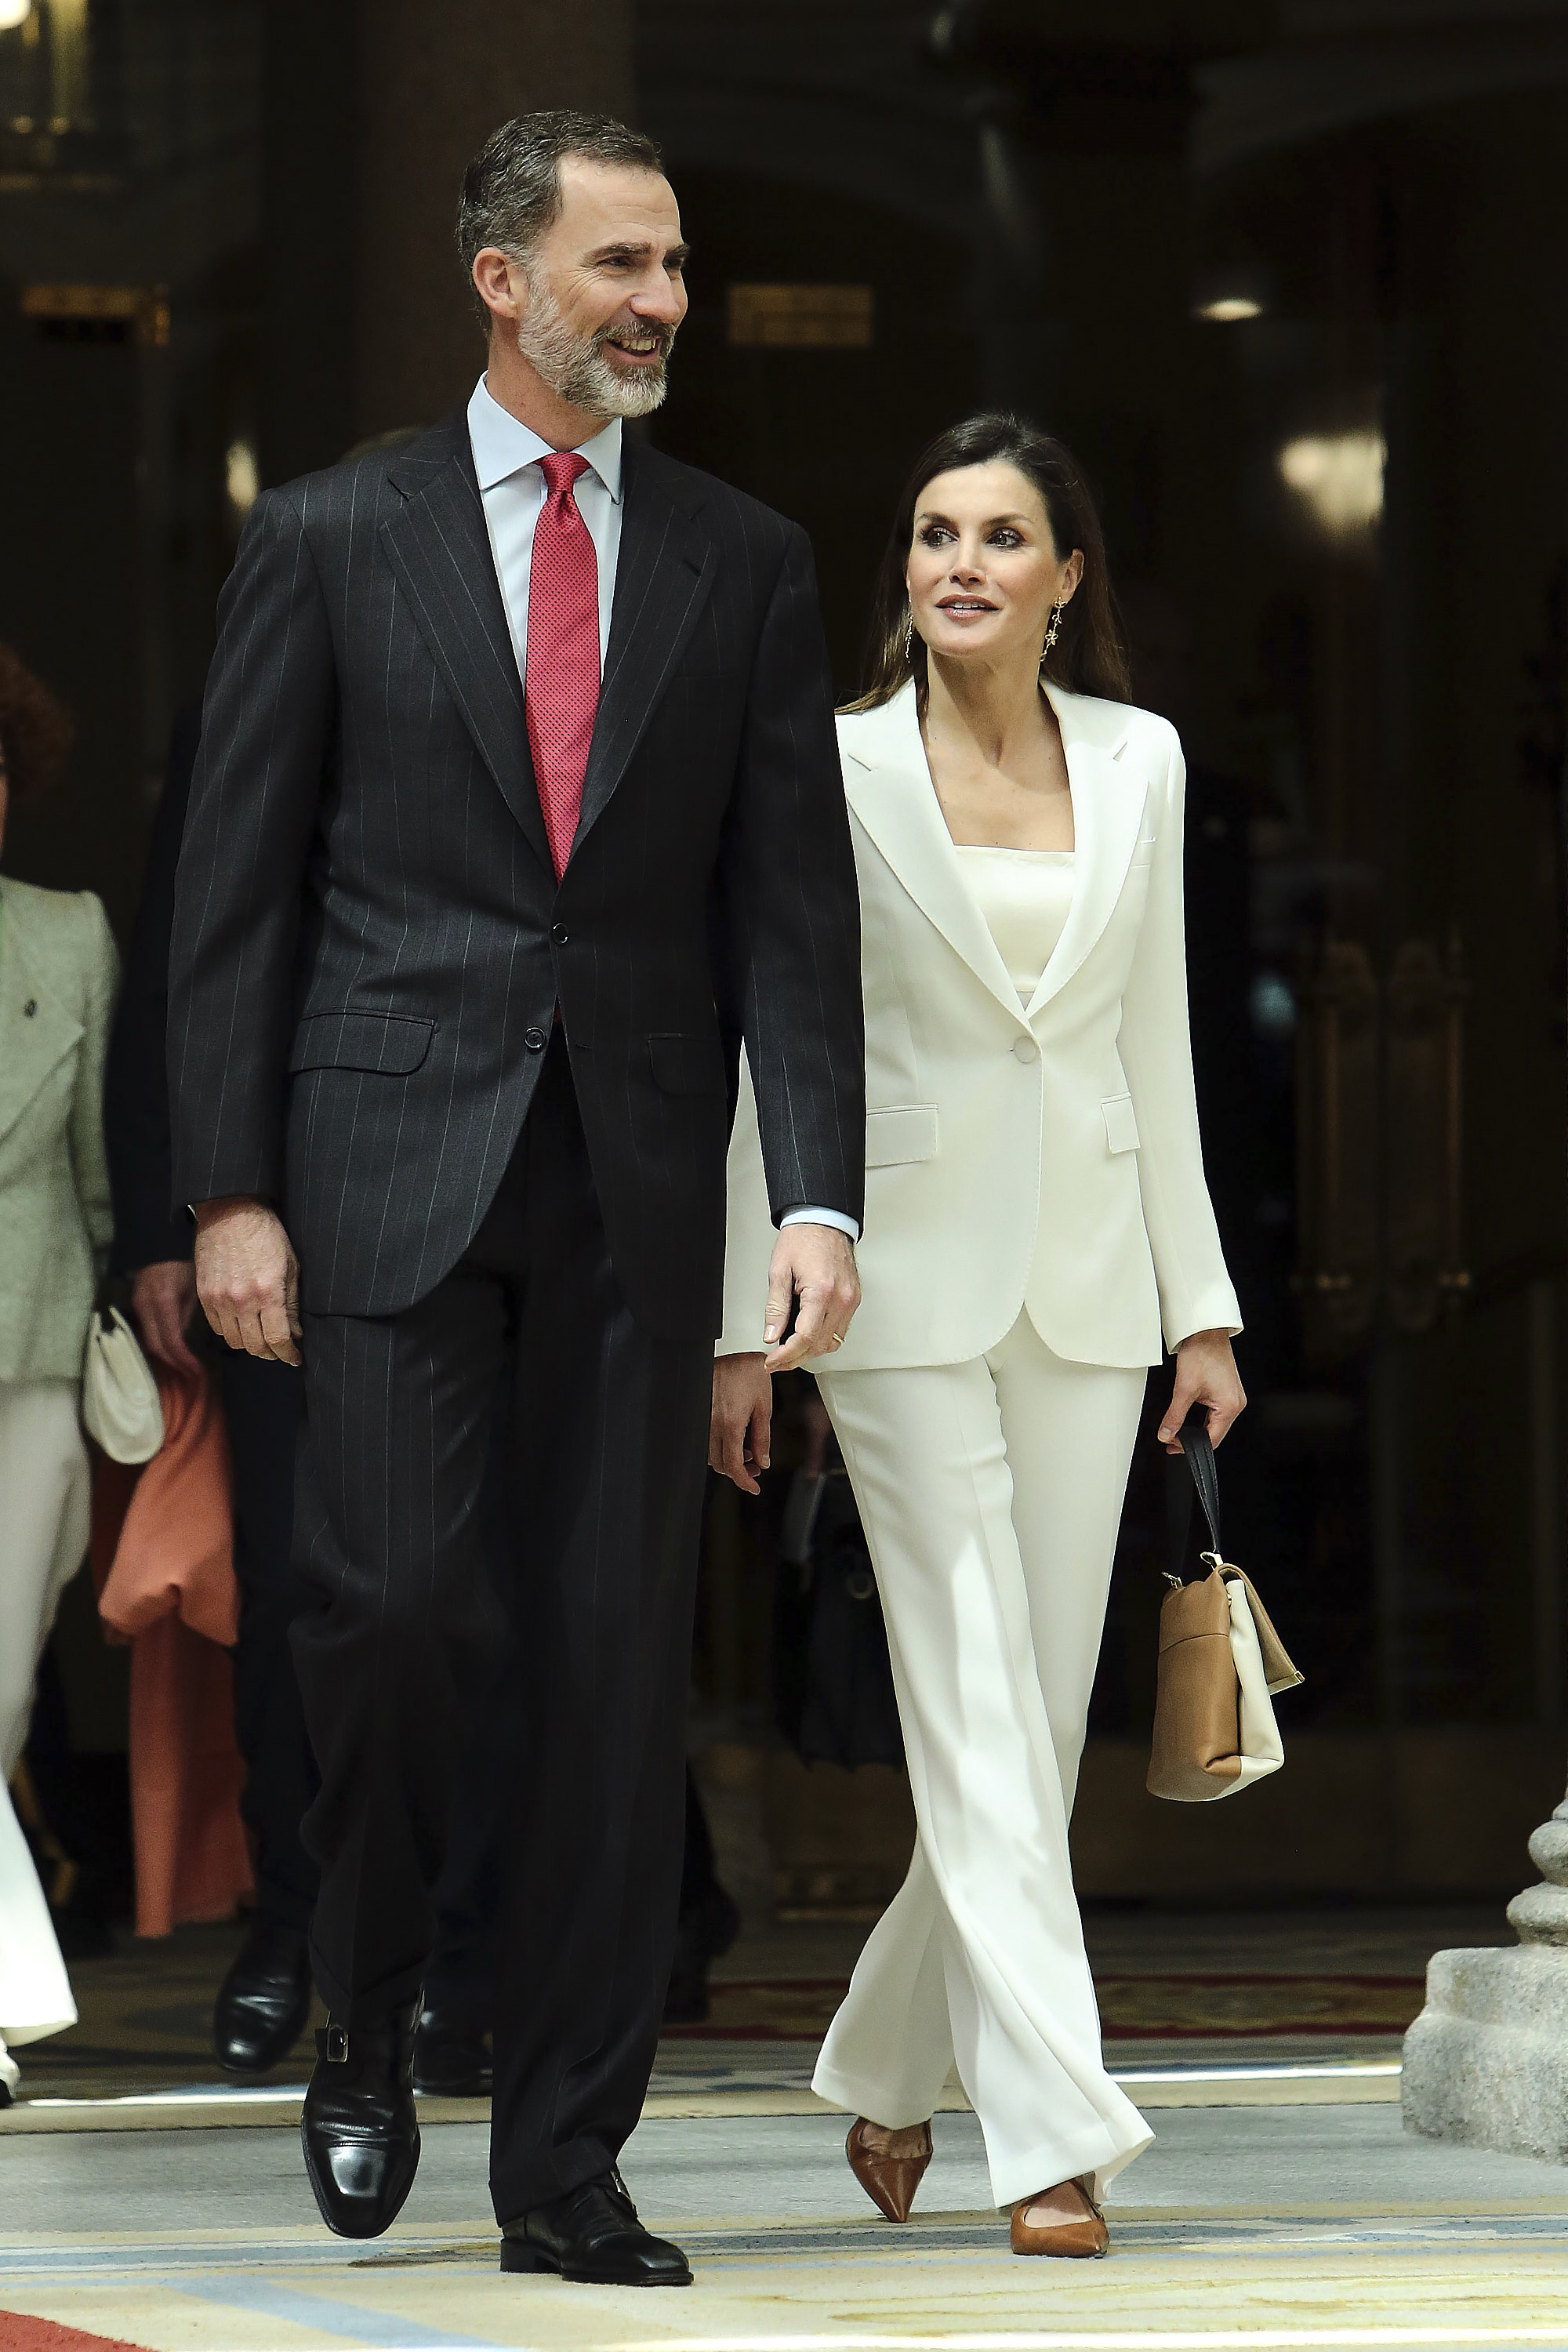 """<p><a href=""""https://style.nine.com.au/2017/07/13/10/26/style_queen-letizia-of-spain"""" target=""""_blank"""" draggable=""""false"""">Queen Letizia of Spain</a> has once again proved she is a <a href=""""https://style.nine.com.au/2017/07/13/10/26/style_queen-letizia-of-spain"""" target=""""_blank"""" draggable=""""false"""">fashion force</a> to be reckoned with.</p> <p>All eyes were on Spain's First Ladyas she upped the sartorial stakes in a slick white pant suit by Carolina Herrera when stepping out with her husband King Felipe VI for an event at the royal palace of El Pardo.</p> <p>The mother-of-twopaired her look with a tan and white Carolina Herrera camelot bag, and pointed tan heels.</p> <p>It's rare for the monarch to step out without garnering fan-fare over her polished style, often mixing high-end designer items from the likes of Alexander McQueen and Altuzarra, with fast-fashion pieces from high-street brands such as Zara and Topshop.</p> <p>Click through to take a look at some of the Spanish royal's most stand-out looks of late…</p>"""